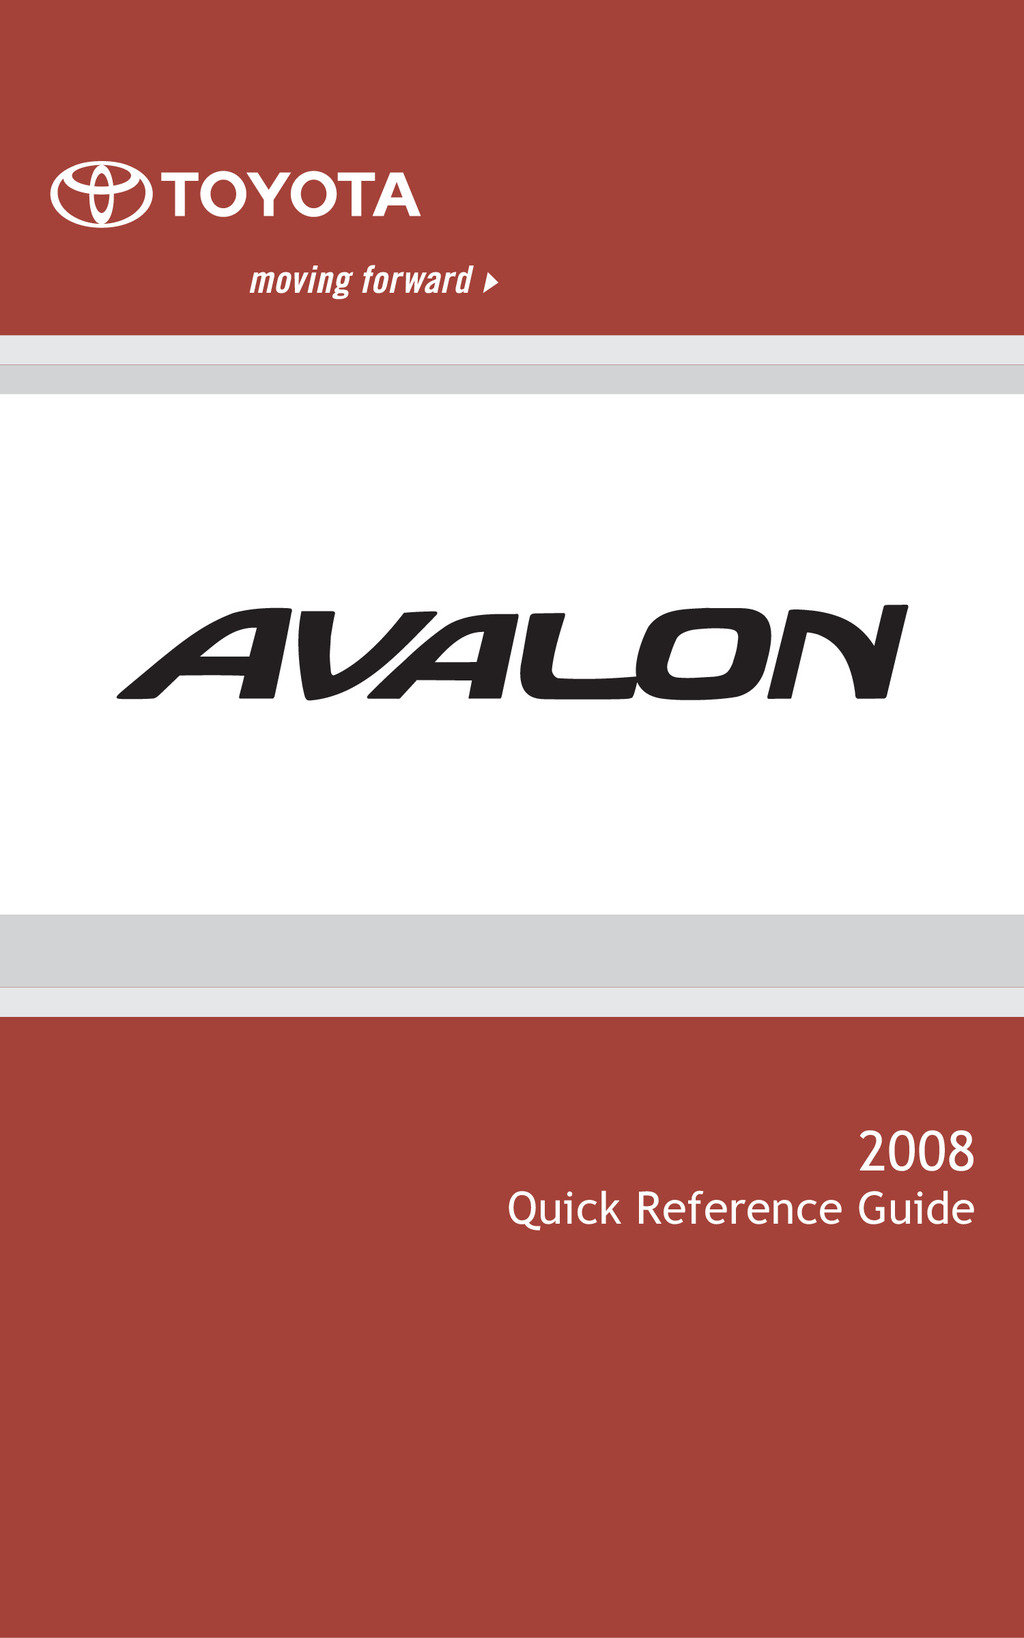 2008 Toyota Avalon owners manual